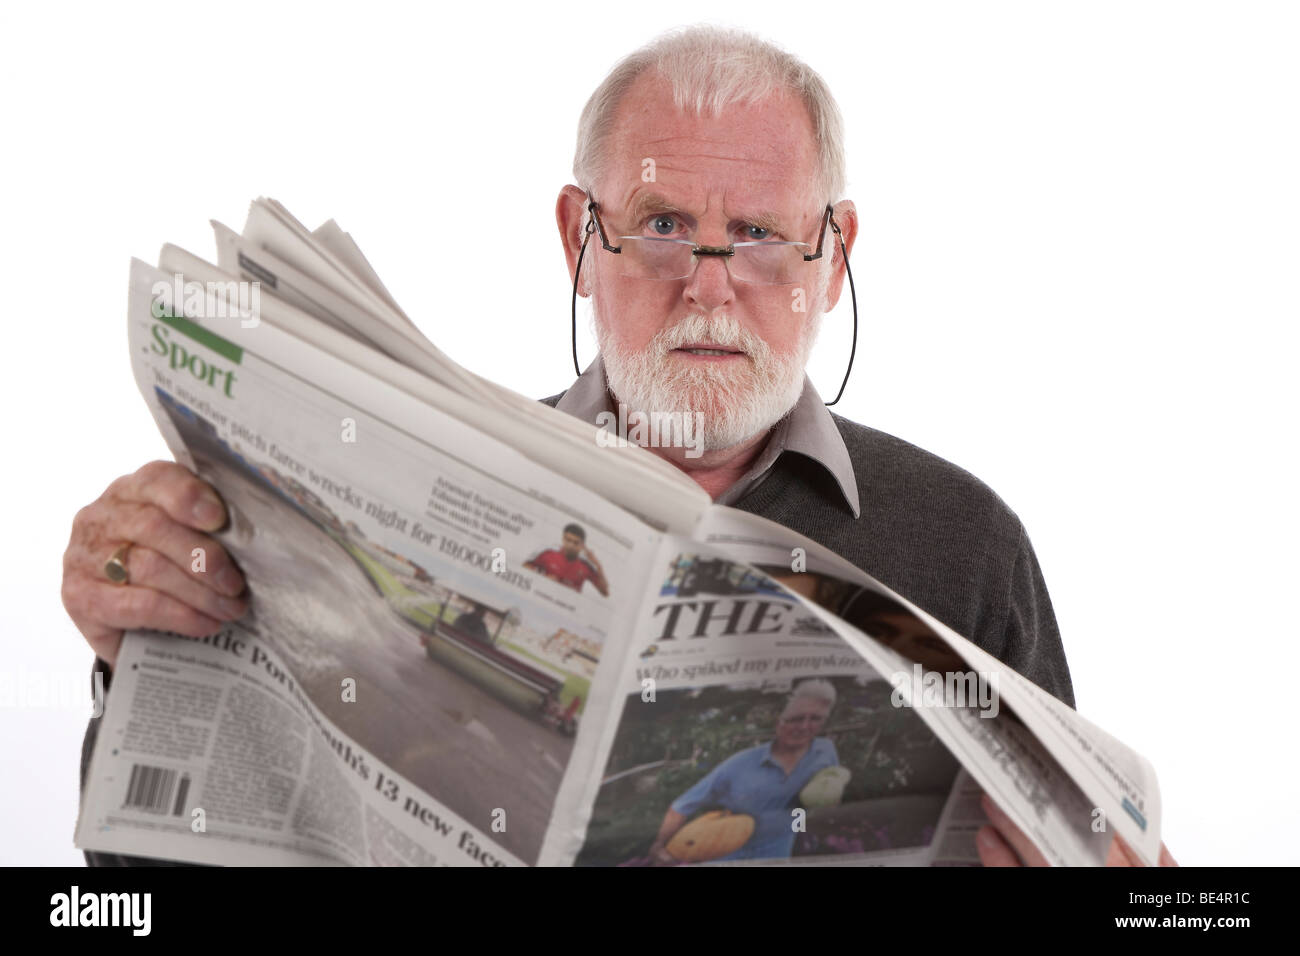 older man reading newspaper with angry expression stock photo